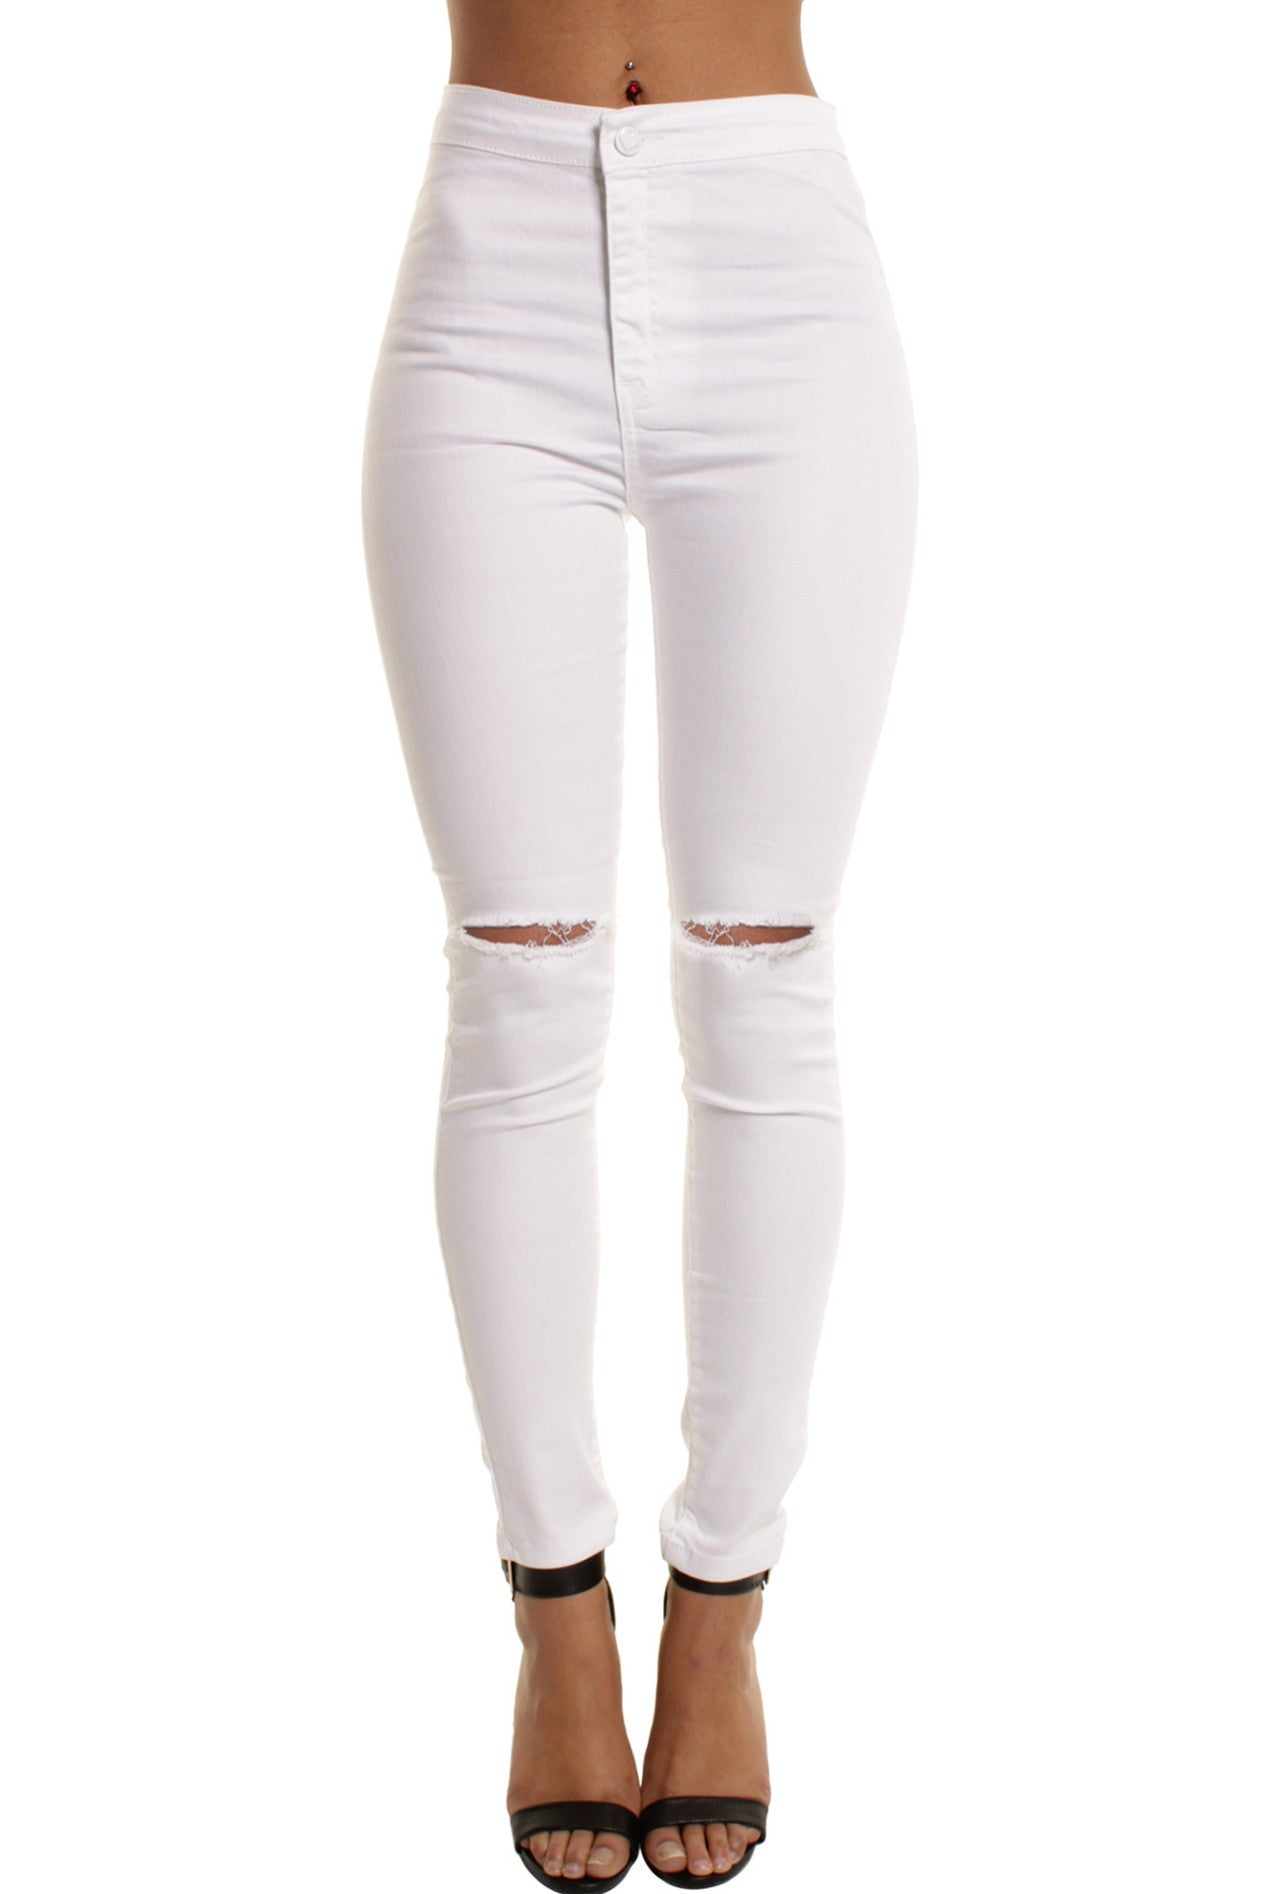 Free shipping and returns on Women's White High-Waisted Jeans at cuttackfirstboutique.cf